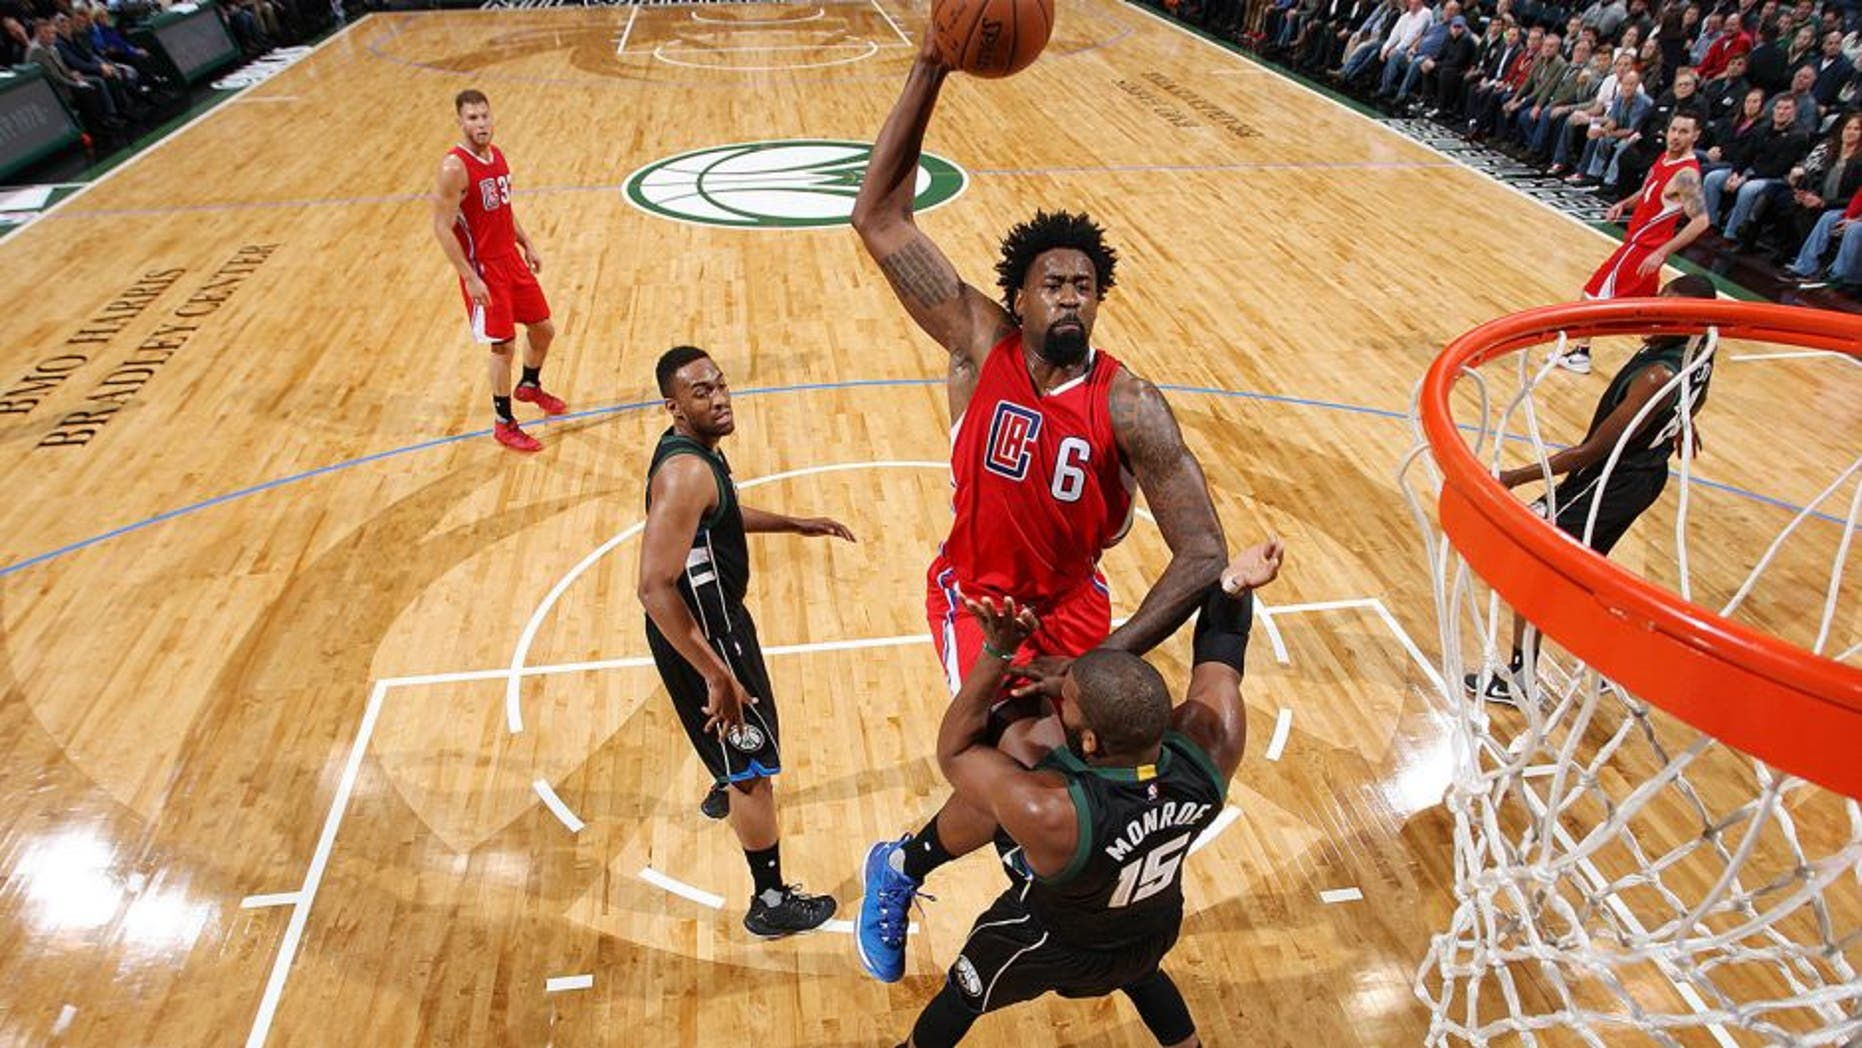 Milwaukee, WI - DECEMBER 9: DeAndre Jordan #6 of the Los Angeles Clippers goes up for a dunk against Greg Monroe #15 of the Milwaukee Bucks on December 9, 2015 at the BMO Harris Bradley Center in Milwaukee, Wisconsin. NOTE TO USER: User expressly acknowledges and agrees that, by downloading and or using this Photograph, user is consenting to the terms and conditions of the Getty Images License Agreement. Mandatory Copyright Notice: Copyright 2015 NBAE (Photo by Gary Dineen/NBAE via Getty Images)